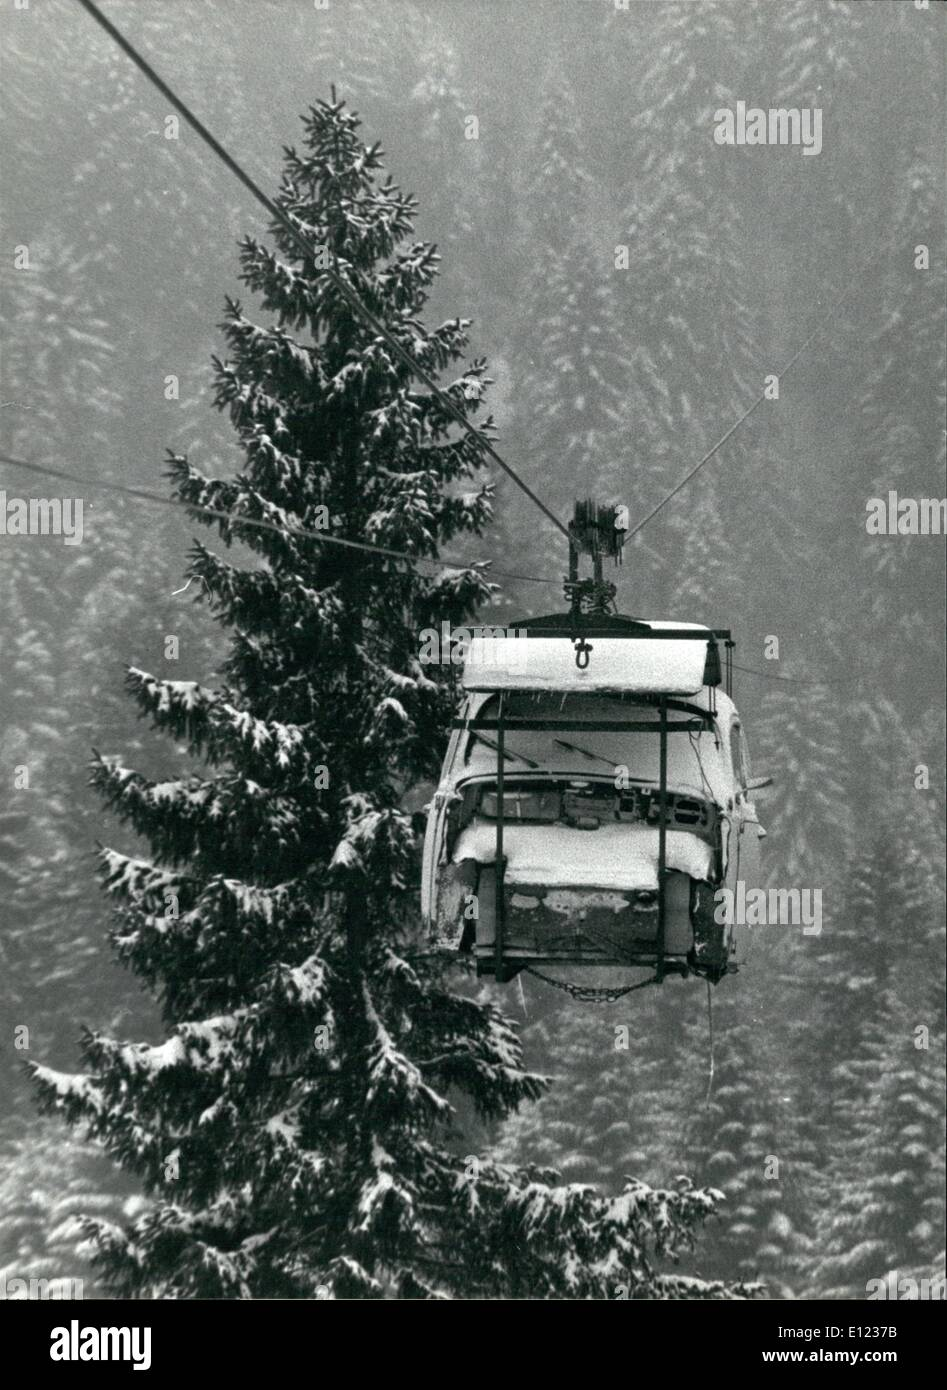 Feb. 02, 1984 - Special aerial cableway for students. An old VW beetle has been installed on the platform of a cargo aerial cableway to help out the few students in Schwesteregg (Entlebuch) who have a difficult pat down to the valley in winter time. Keystone Zurich 2-27-84 - Stock Image